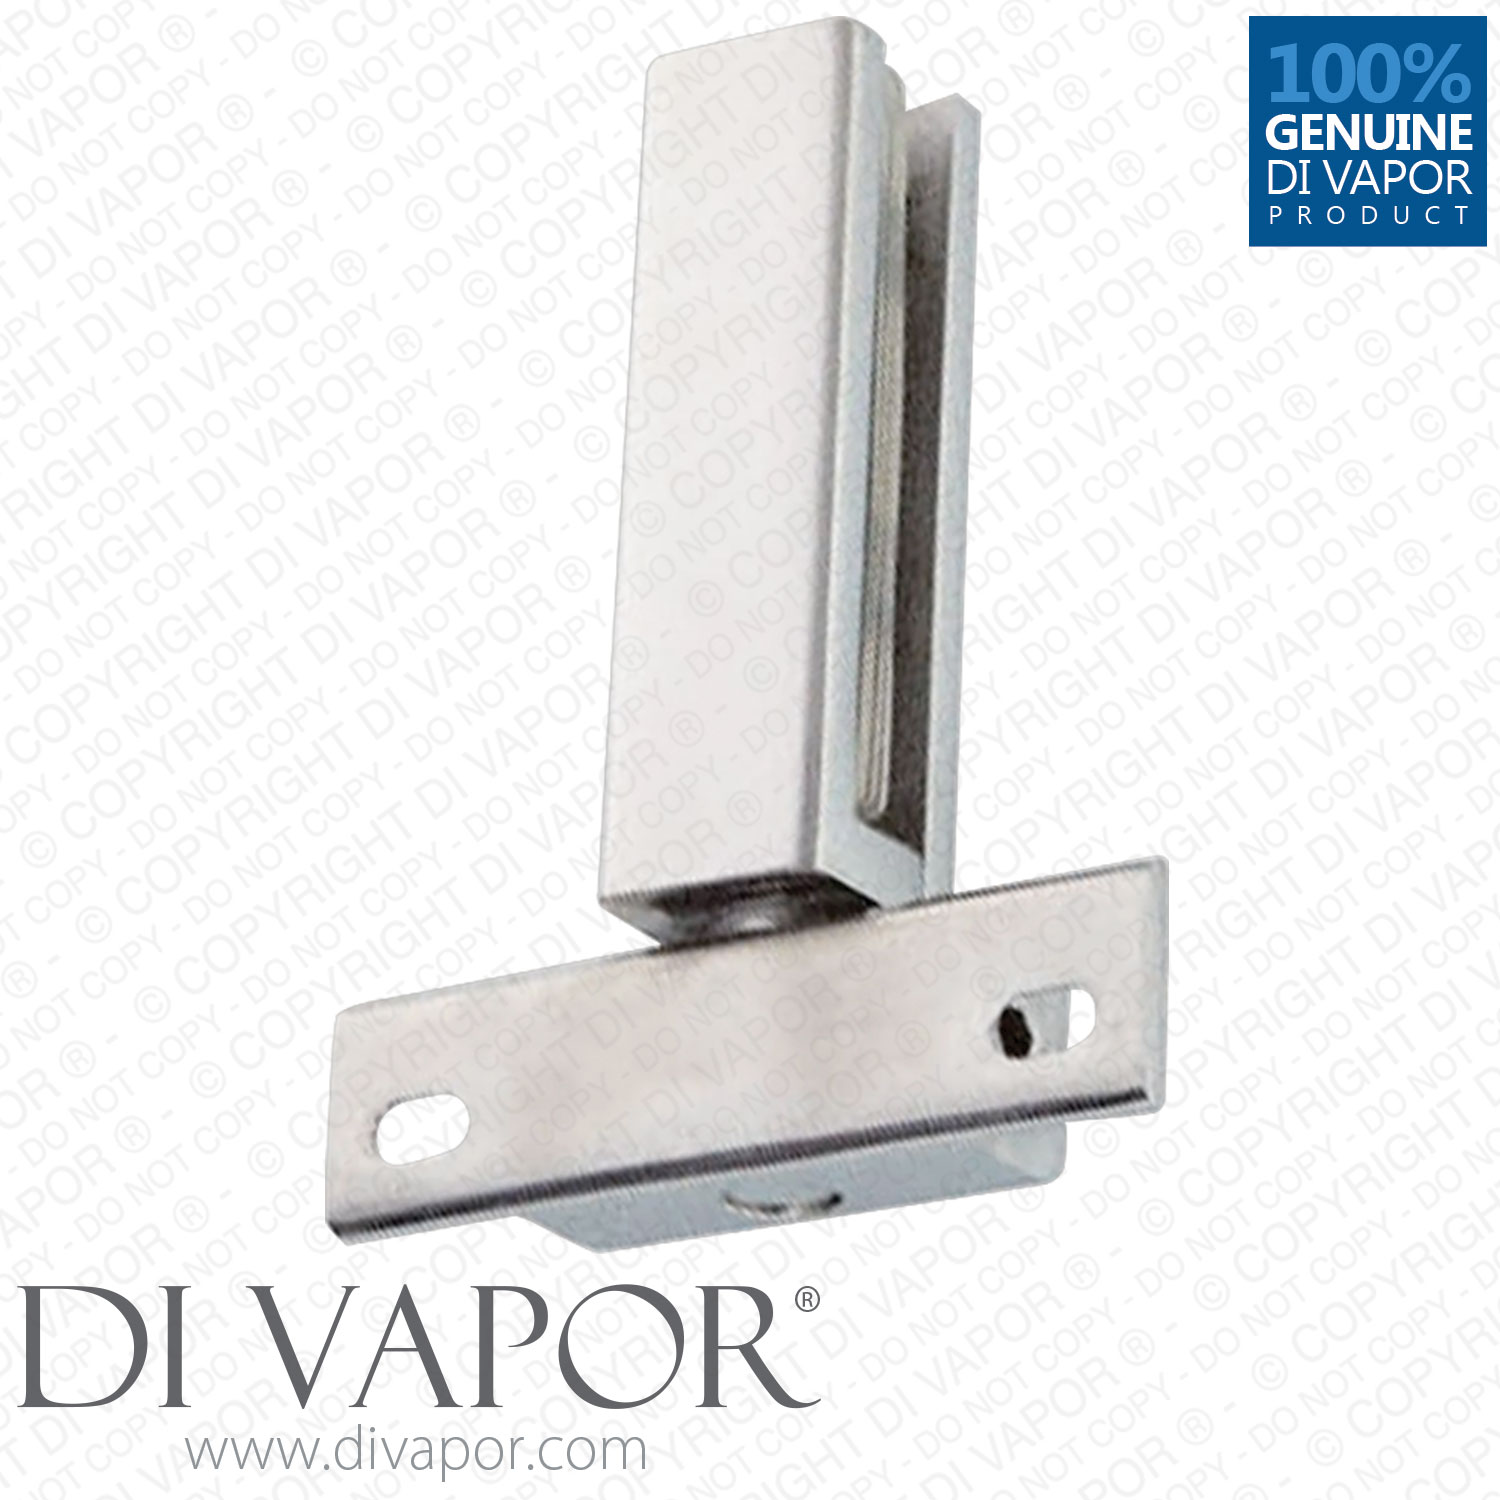 Pivot Shower Door Spare Parts - shower door parts